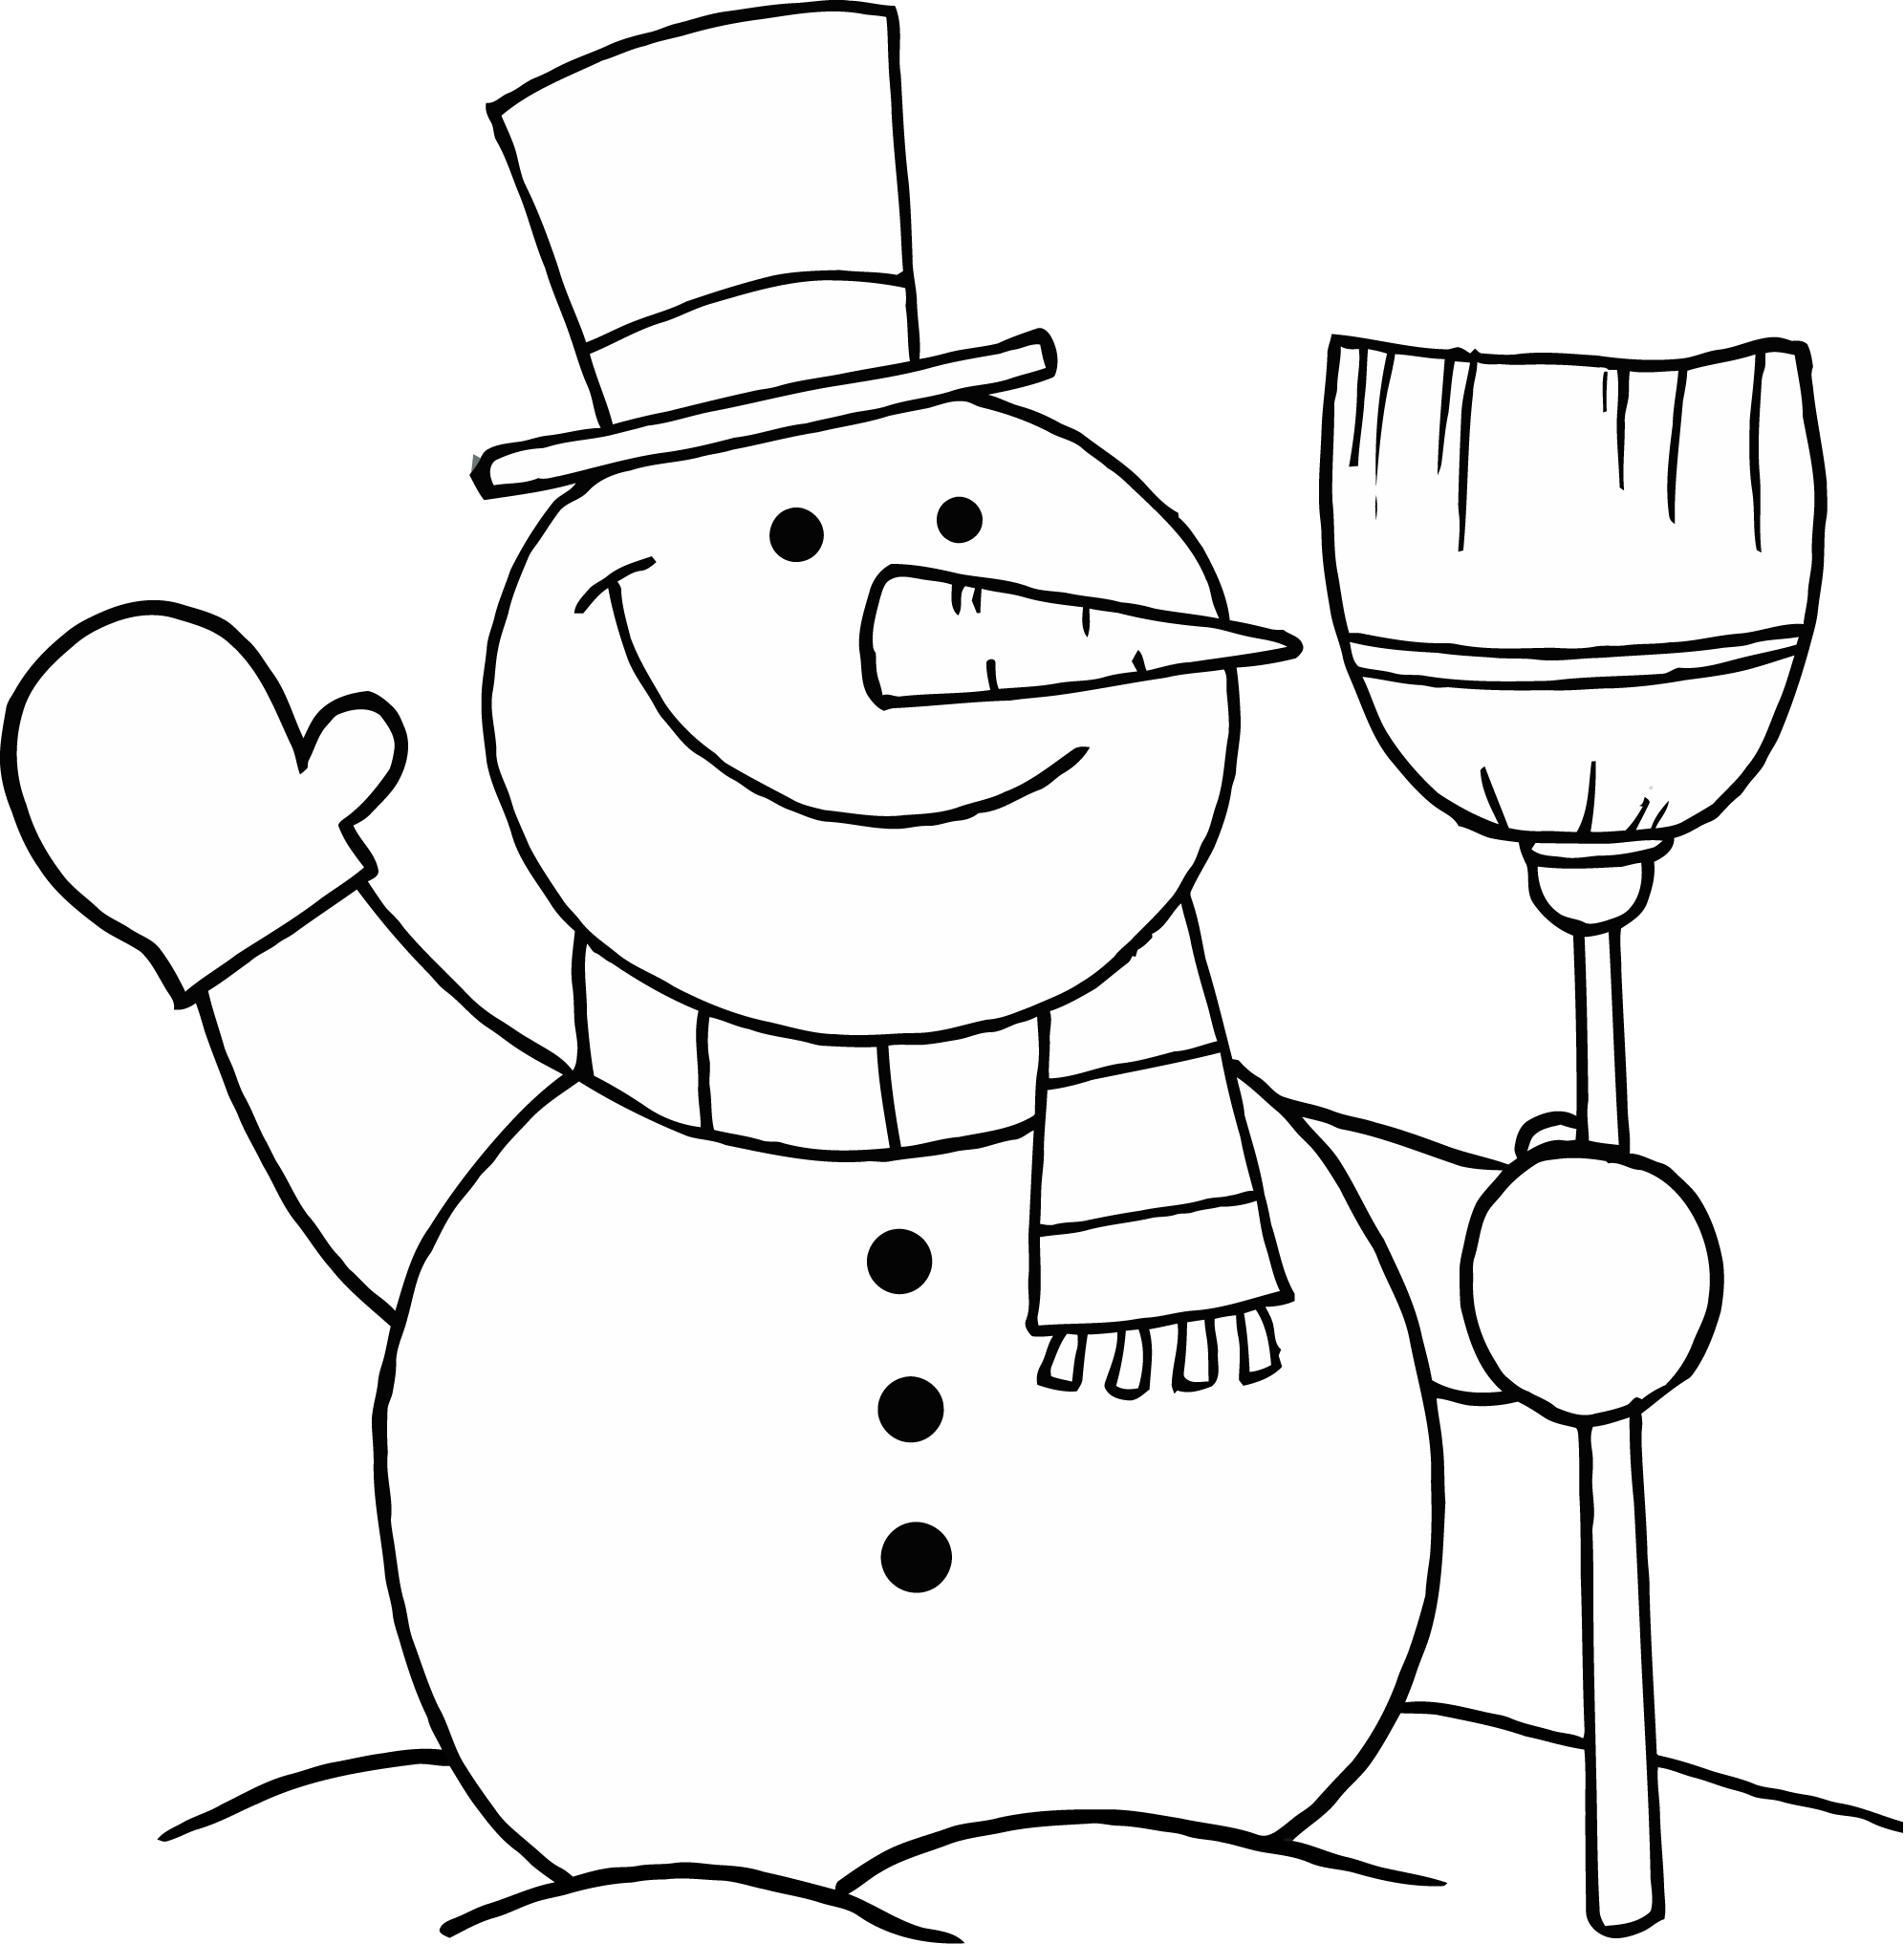 1992x2034 Coloring Pages Of Snowman Printable Snowman Coloring Pages Number